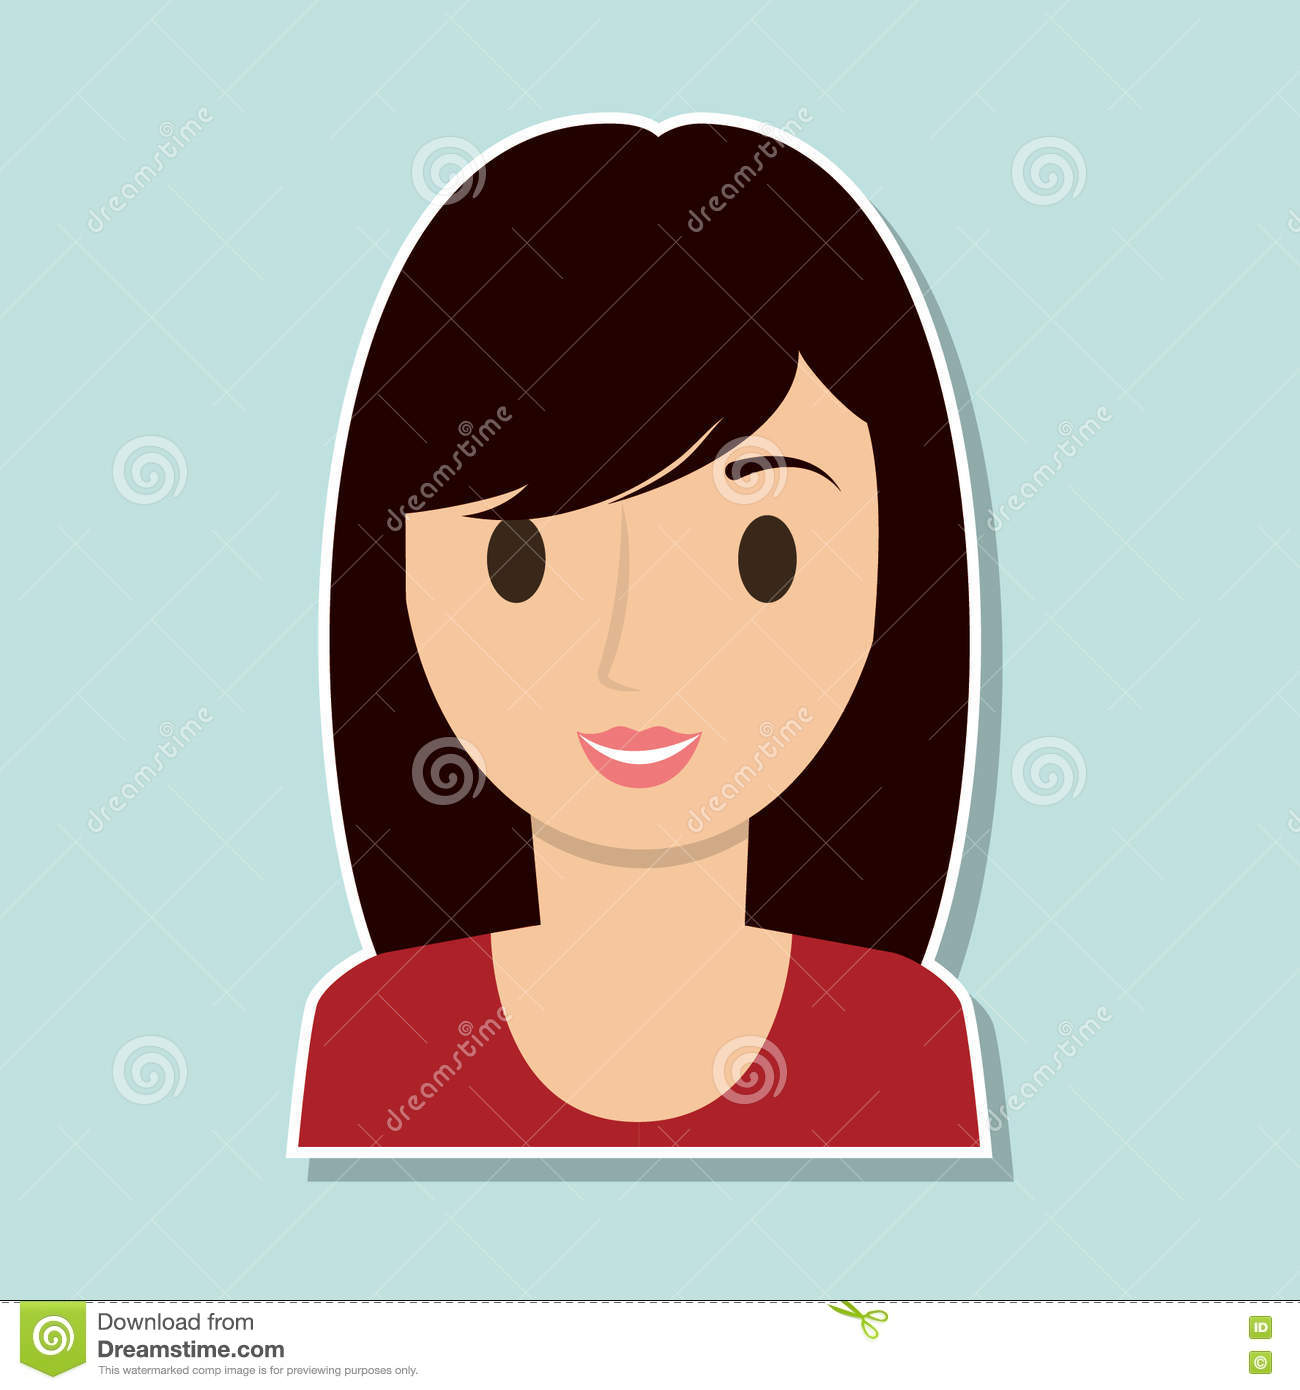 woman cartoon person design stock vector illustration of cheerful